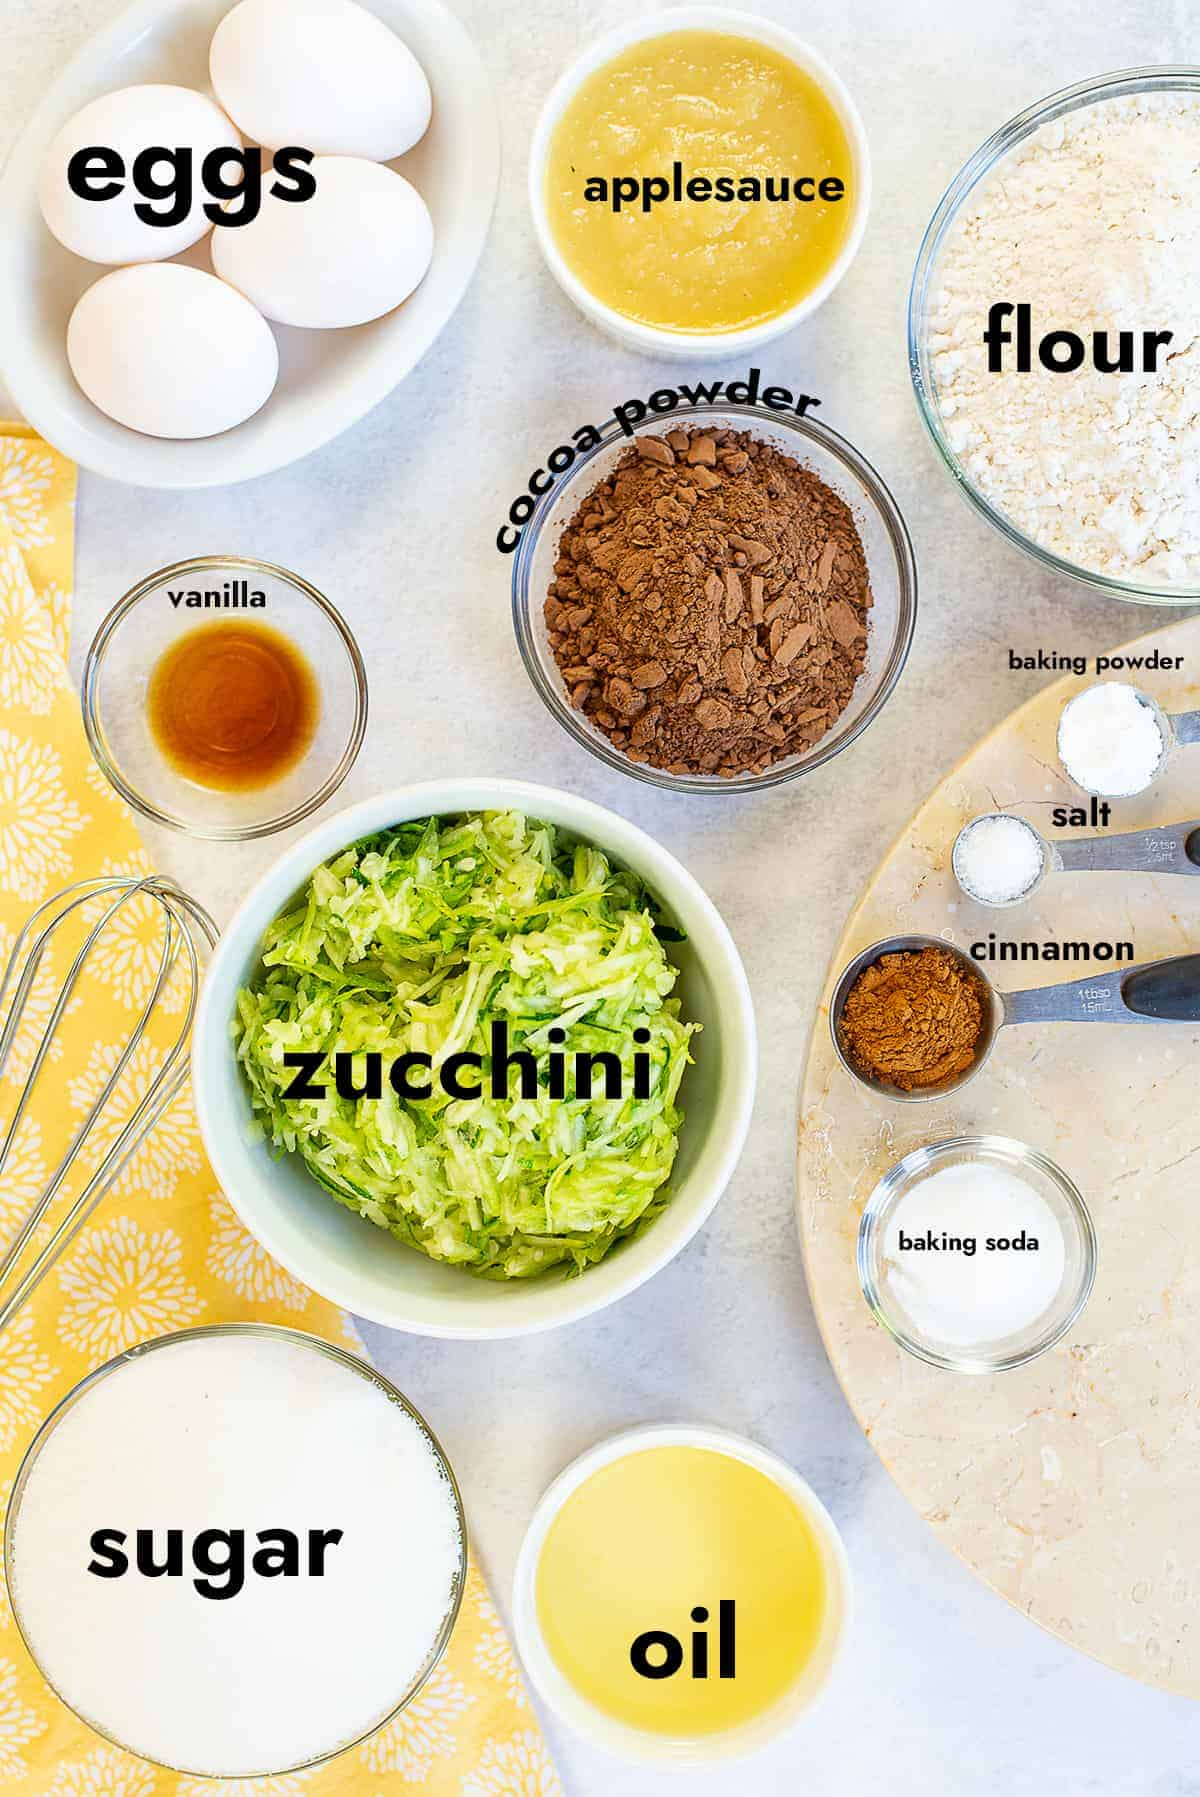 ingredients for chocolate zucchini cake on countertop.